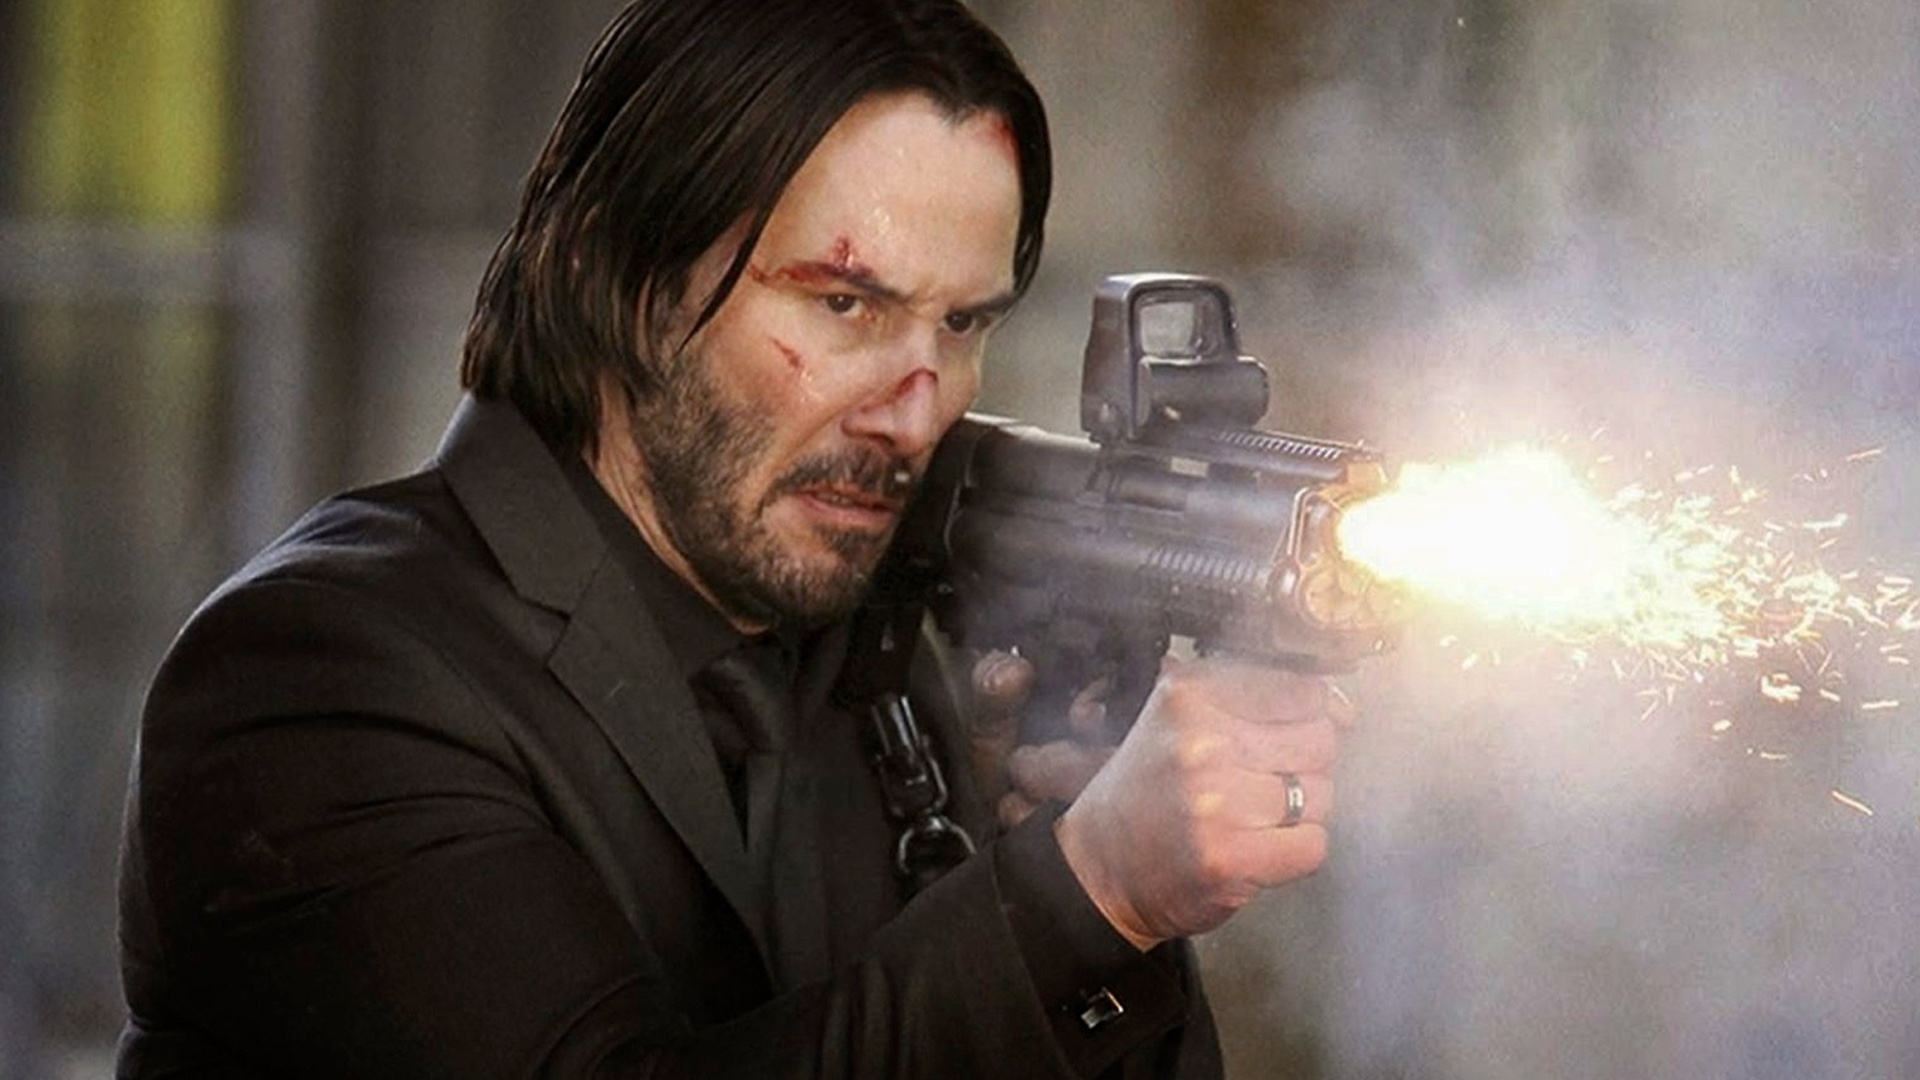 keanu-reeves-in-talks-to-star-in-superhero-netflix-movie-past-midnight-with-joe-and-anthony-russo-social.jpg